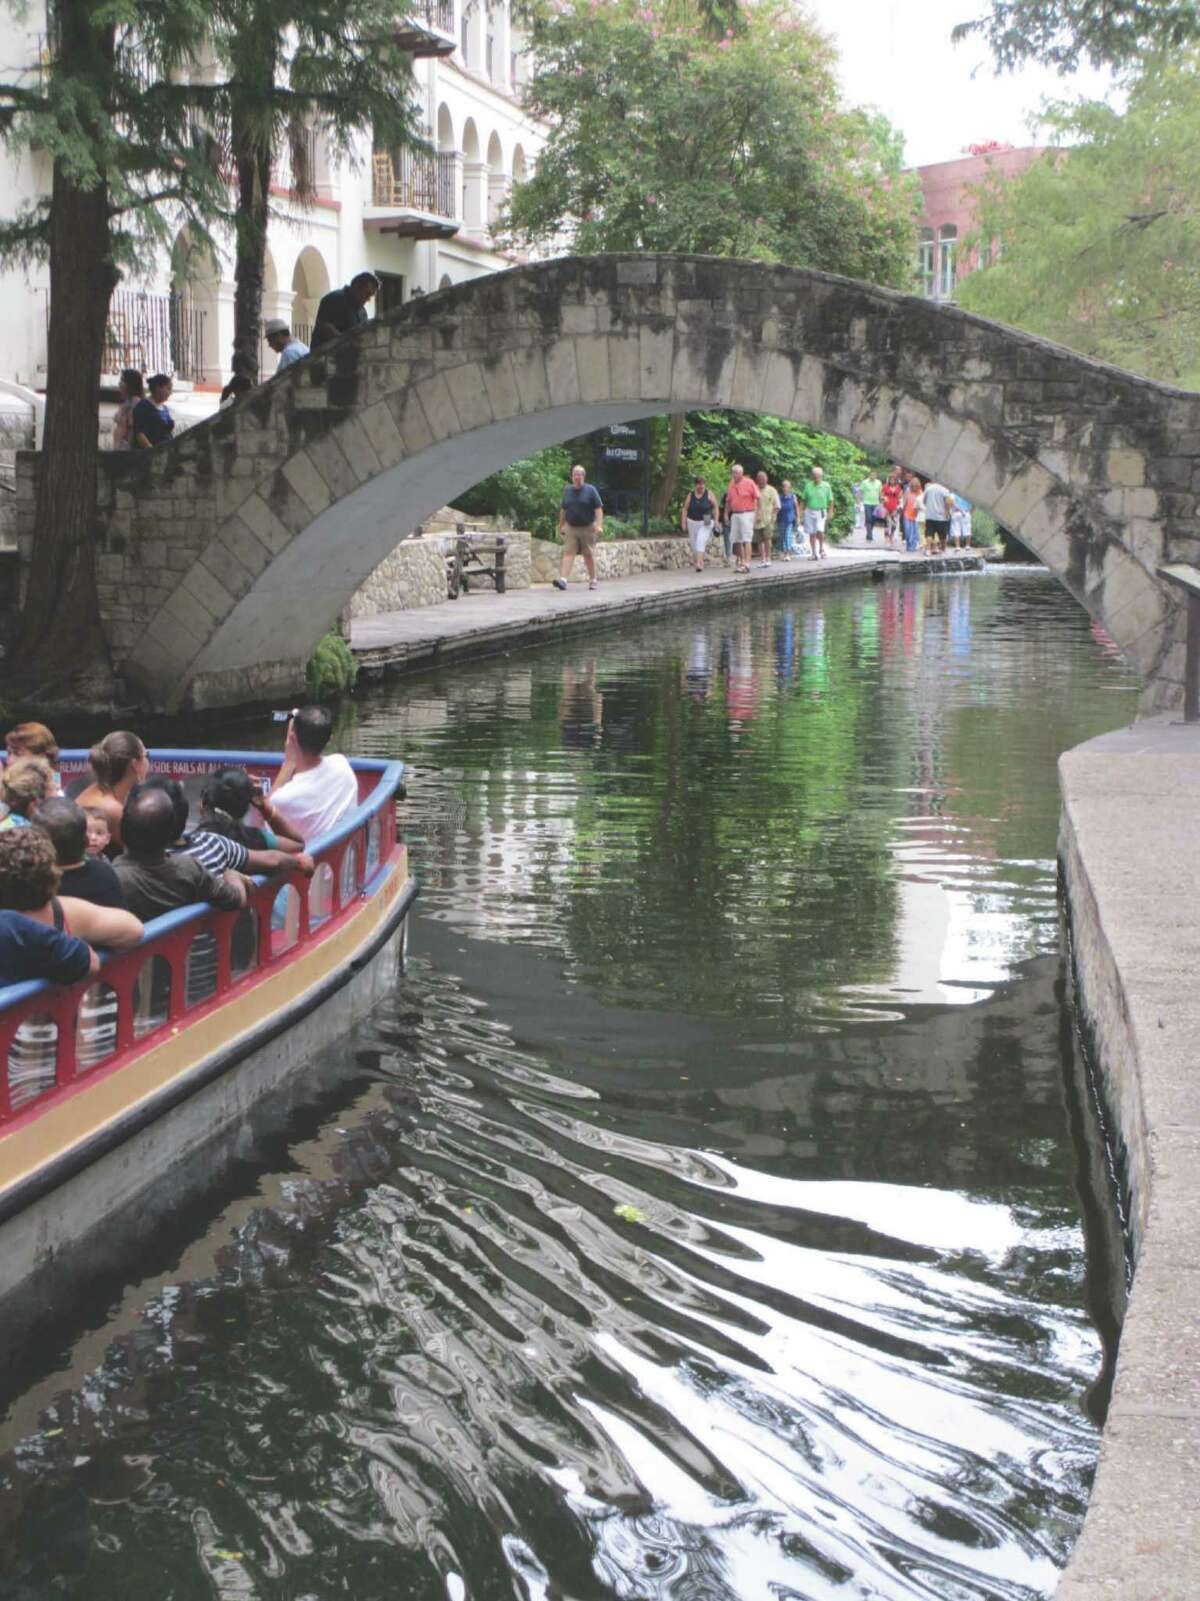 If locals can sometimes seem jaded with their world-famous River Walk, tourists see it as an enchanting, must-see-and-visit site. Sightseeers (above) take a barge ride while others explore its sidewalks and bridges.